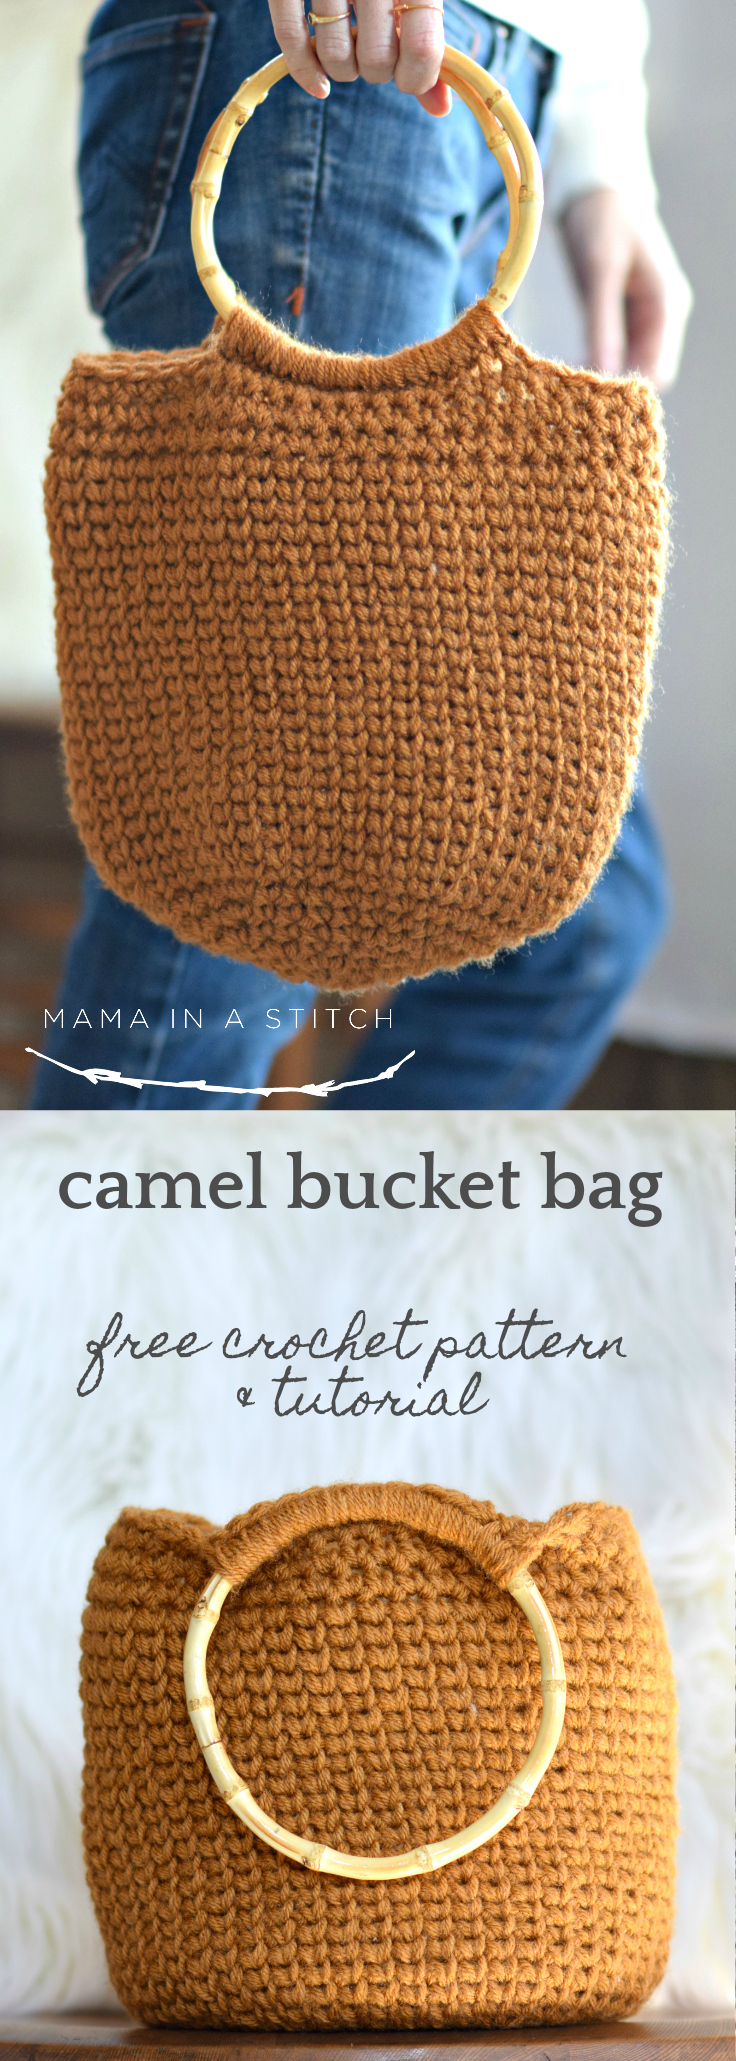 Camel Bucket Bag - Crocheted Bag Pattern – Mama In A Stitch